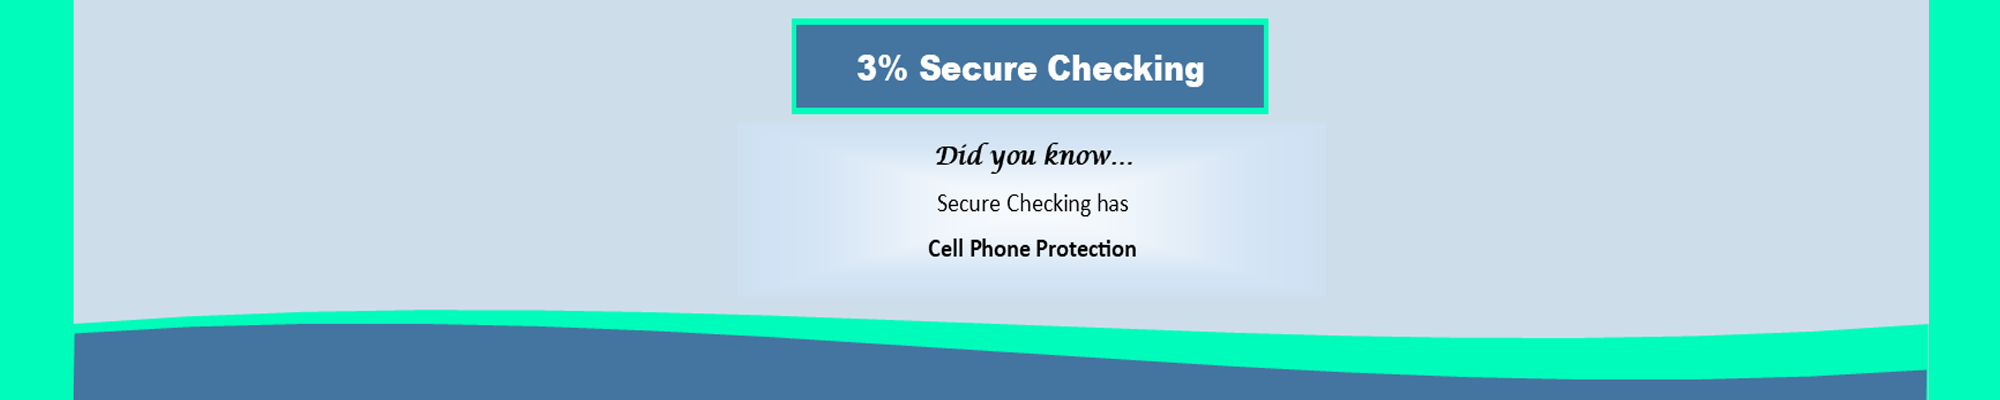 Secure Checking benefit 3